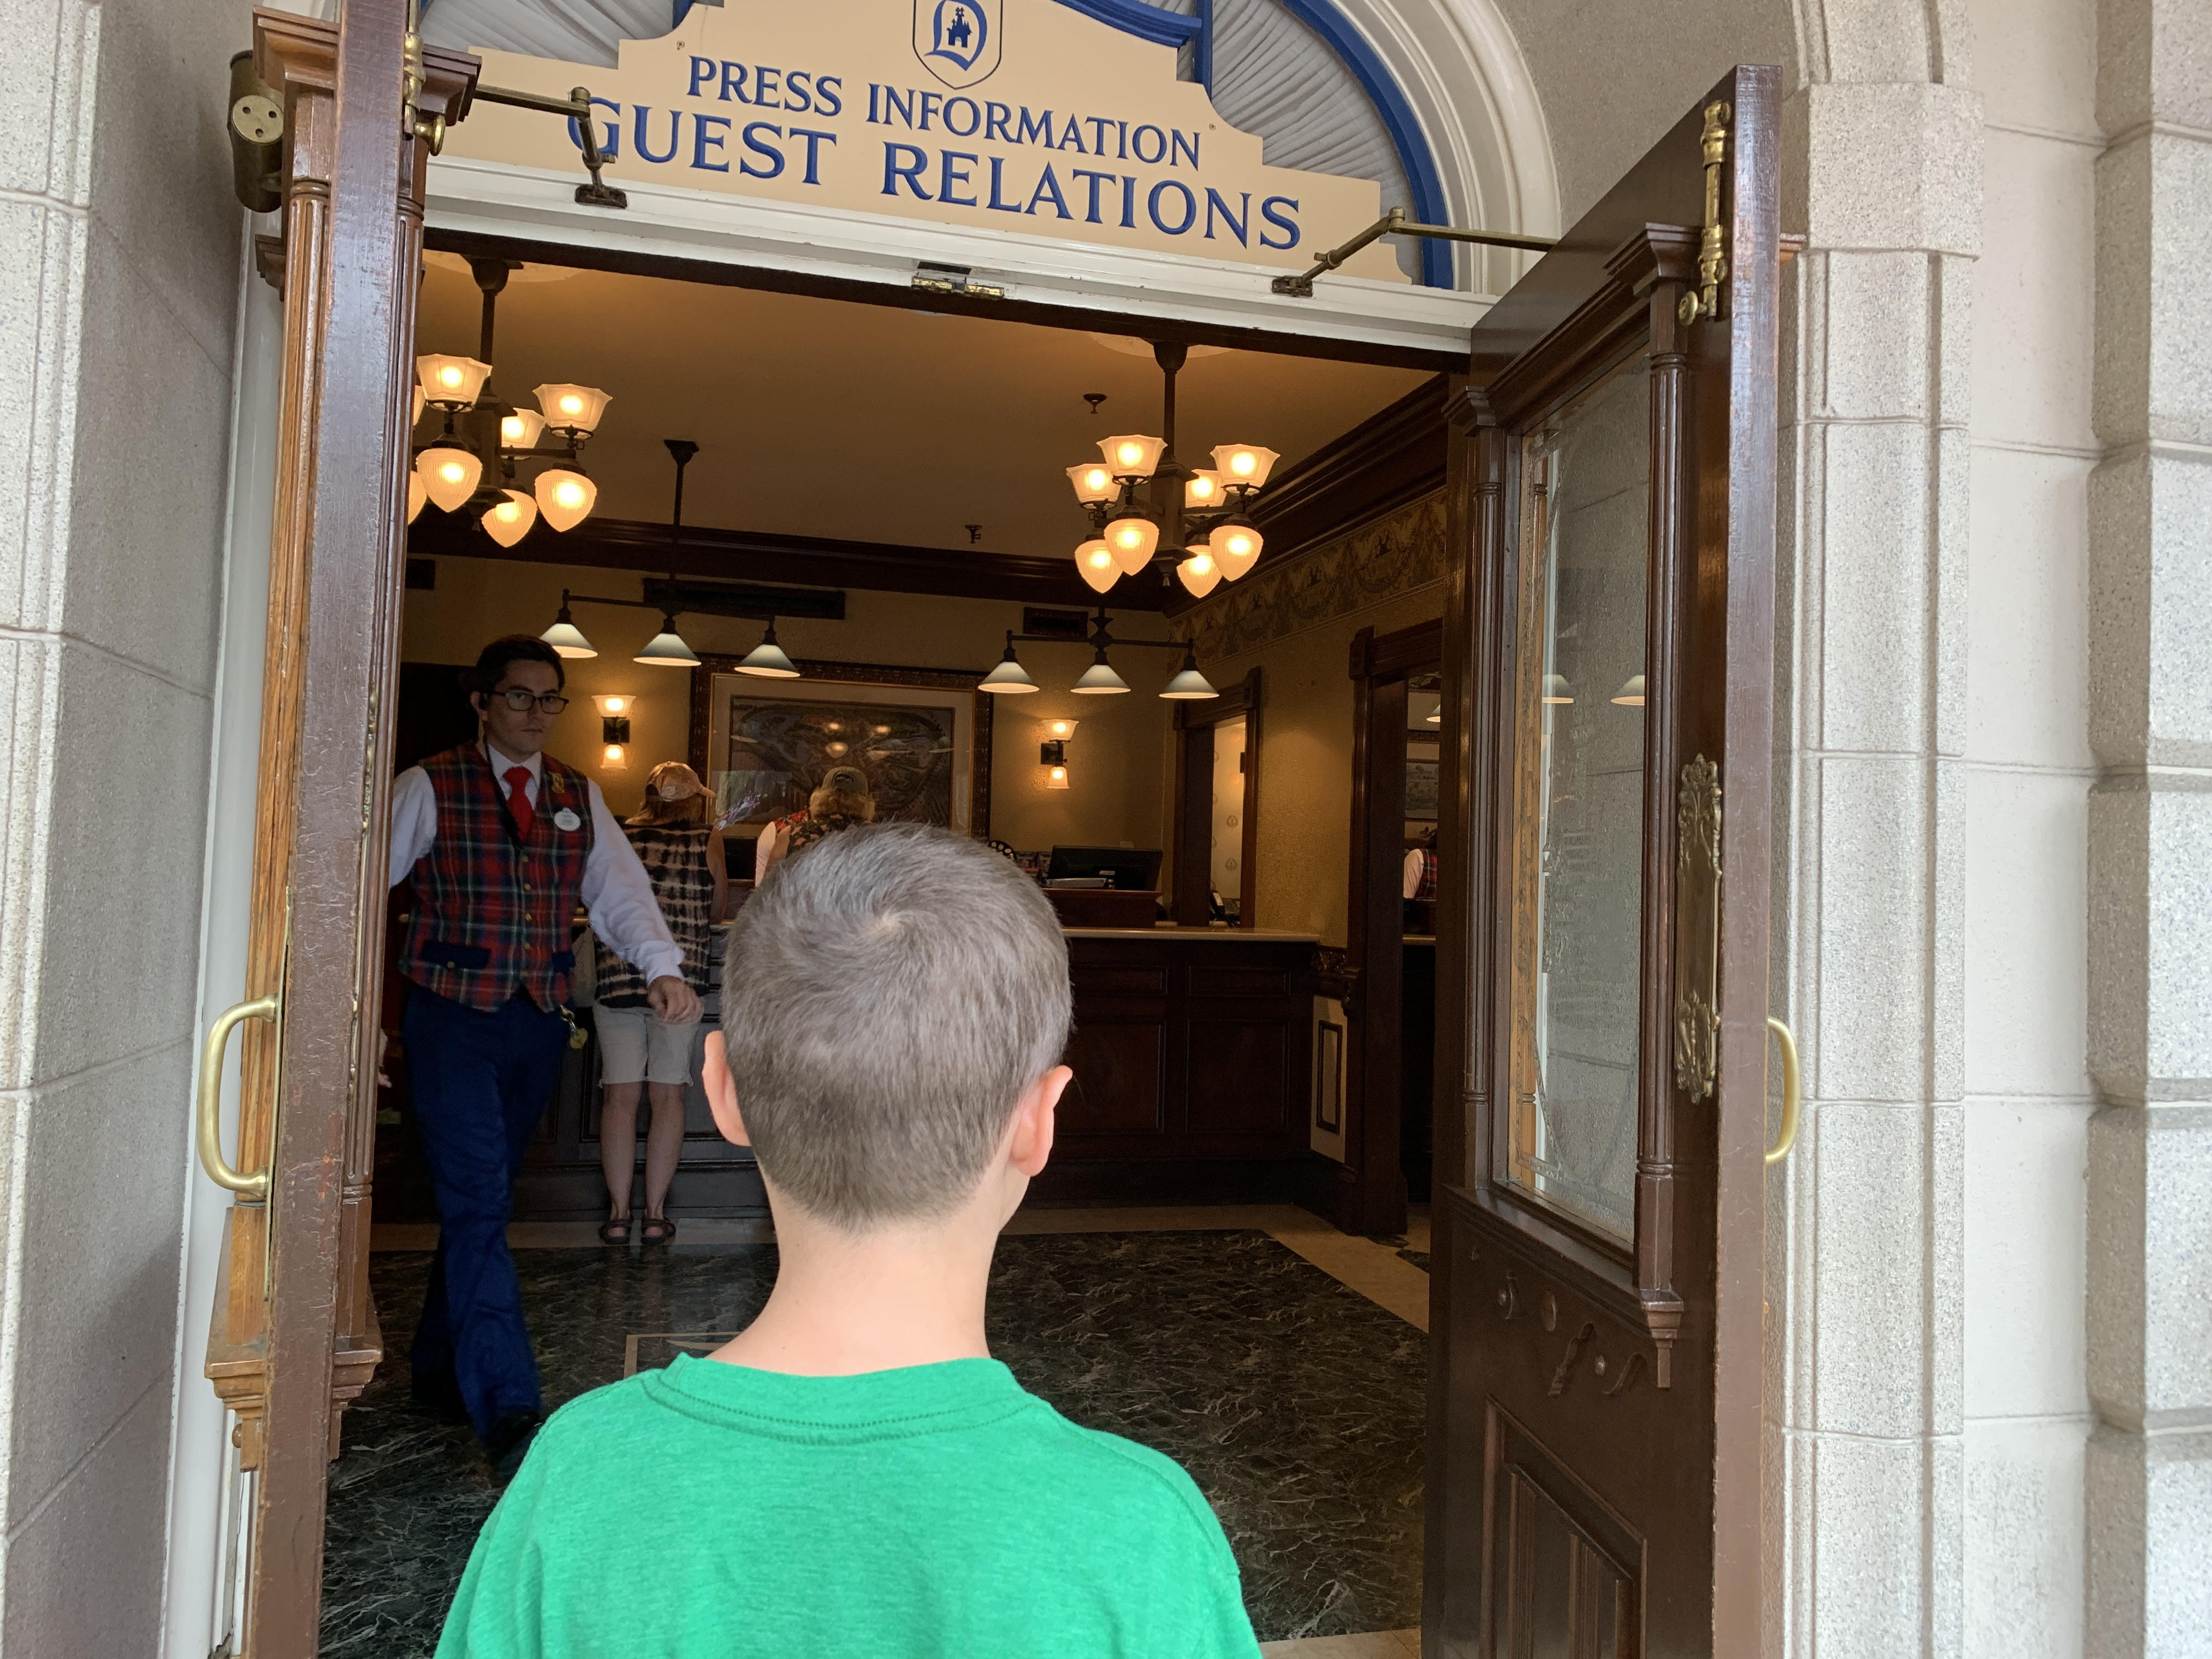 Waiting in line at City Hall for our DAS pass before visiting Galaxy's Edge.